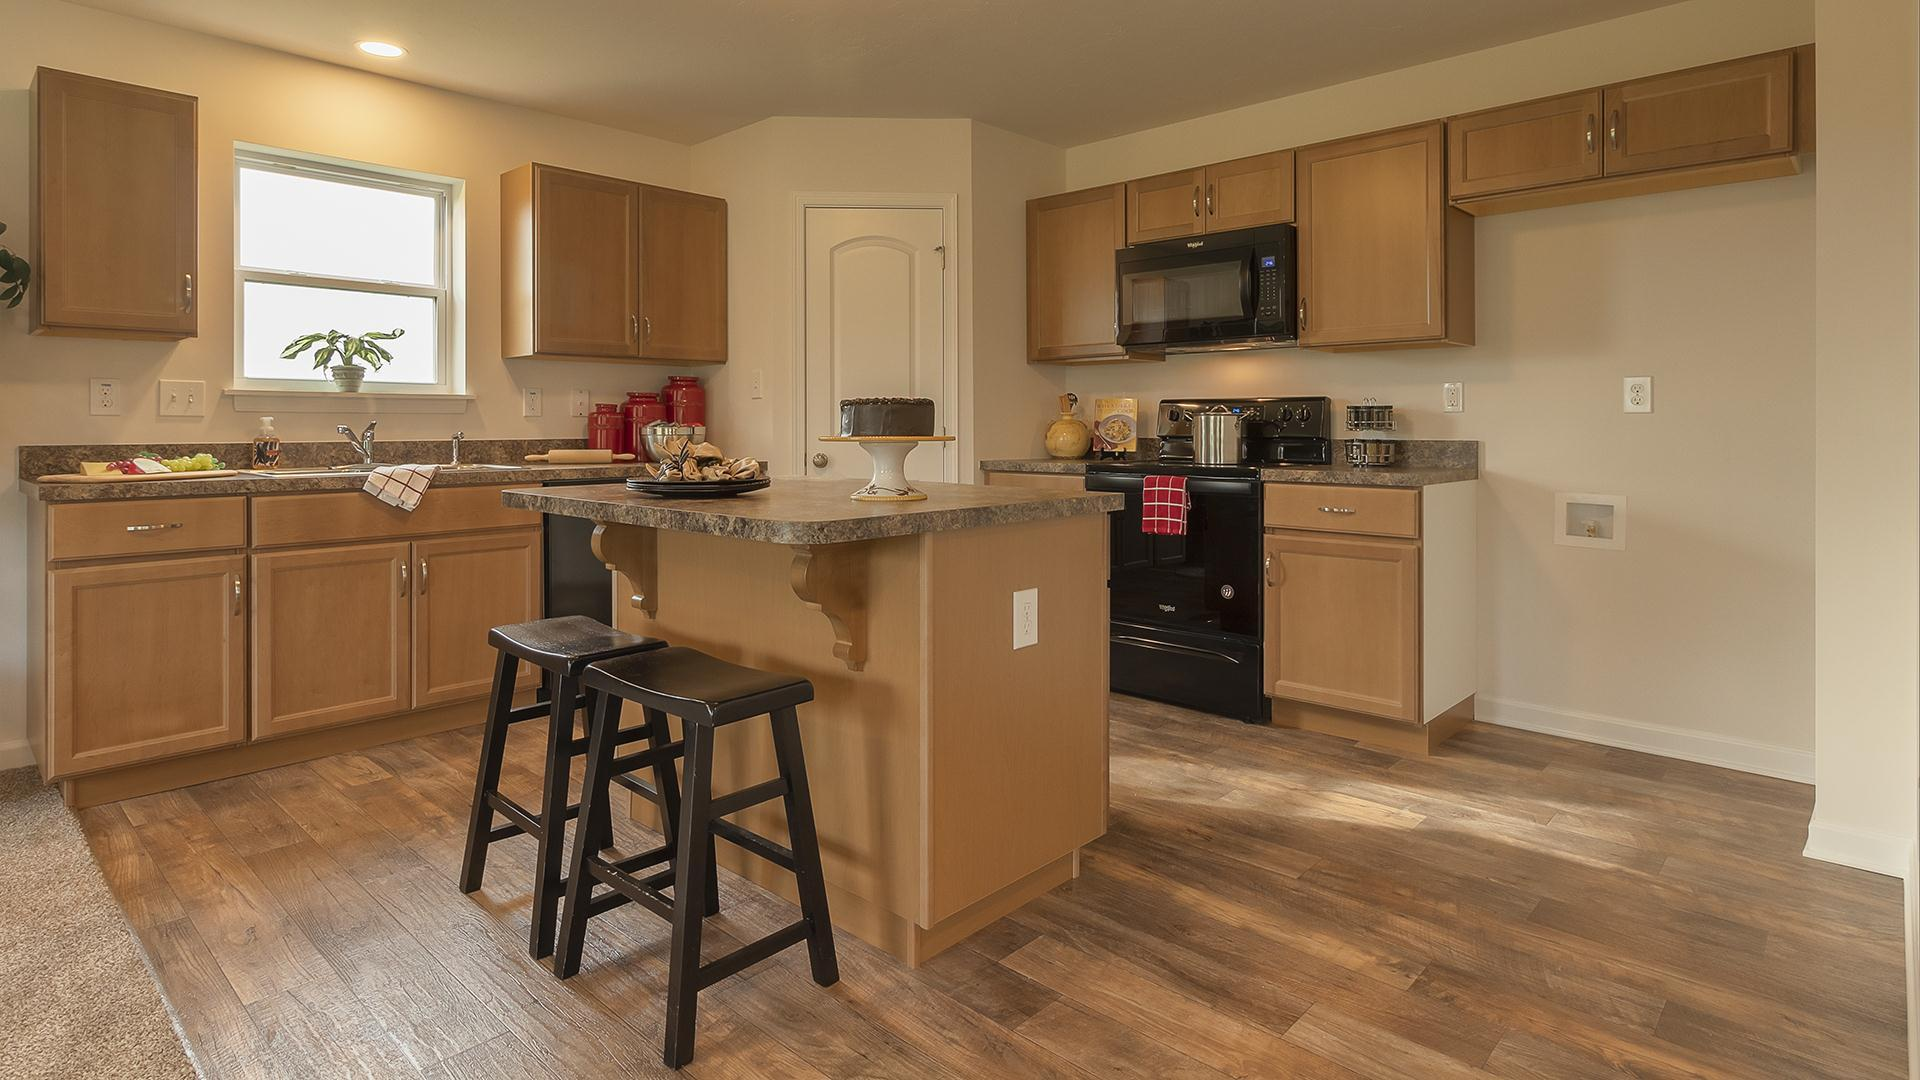 Kitchen featured in the Rosewood By S & A Homes in State College, PA